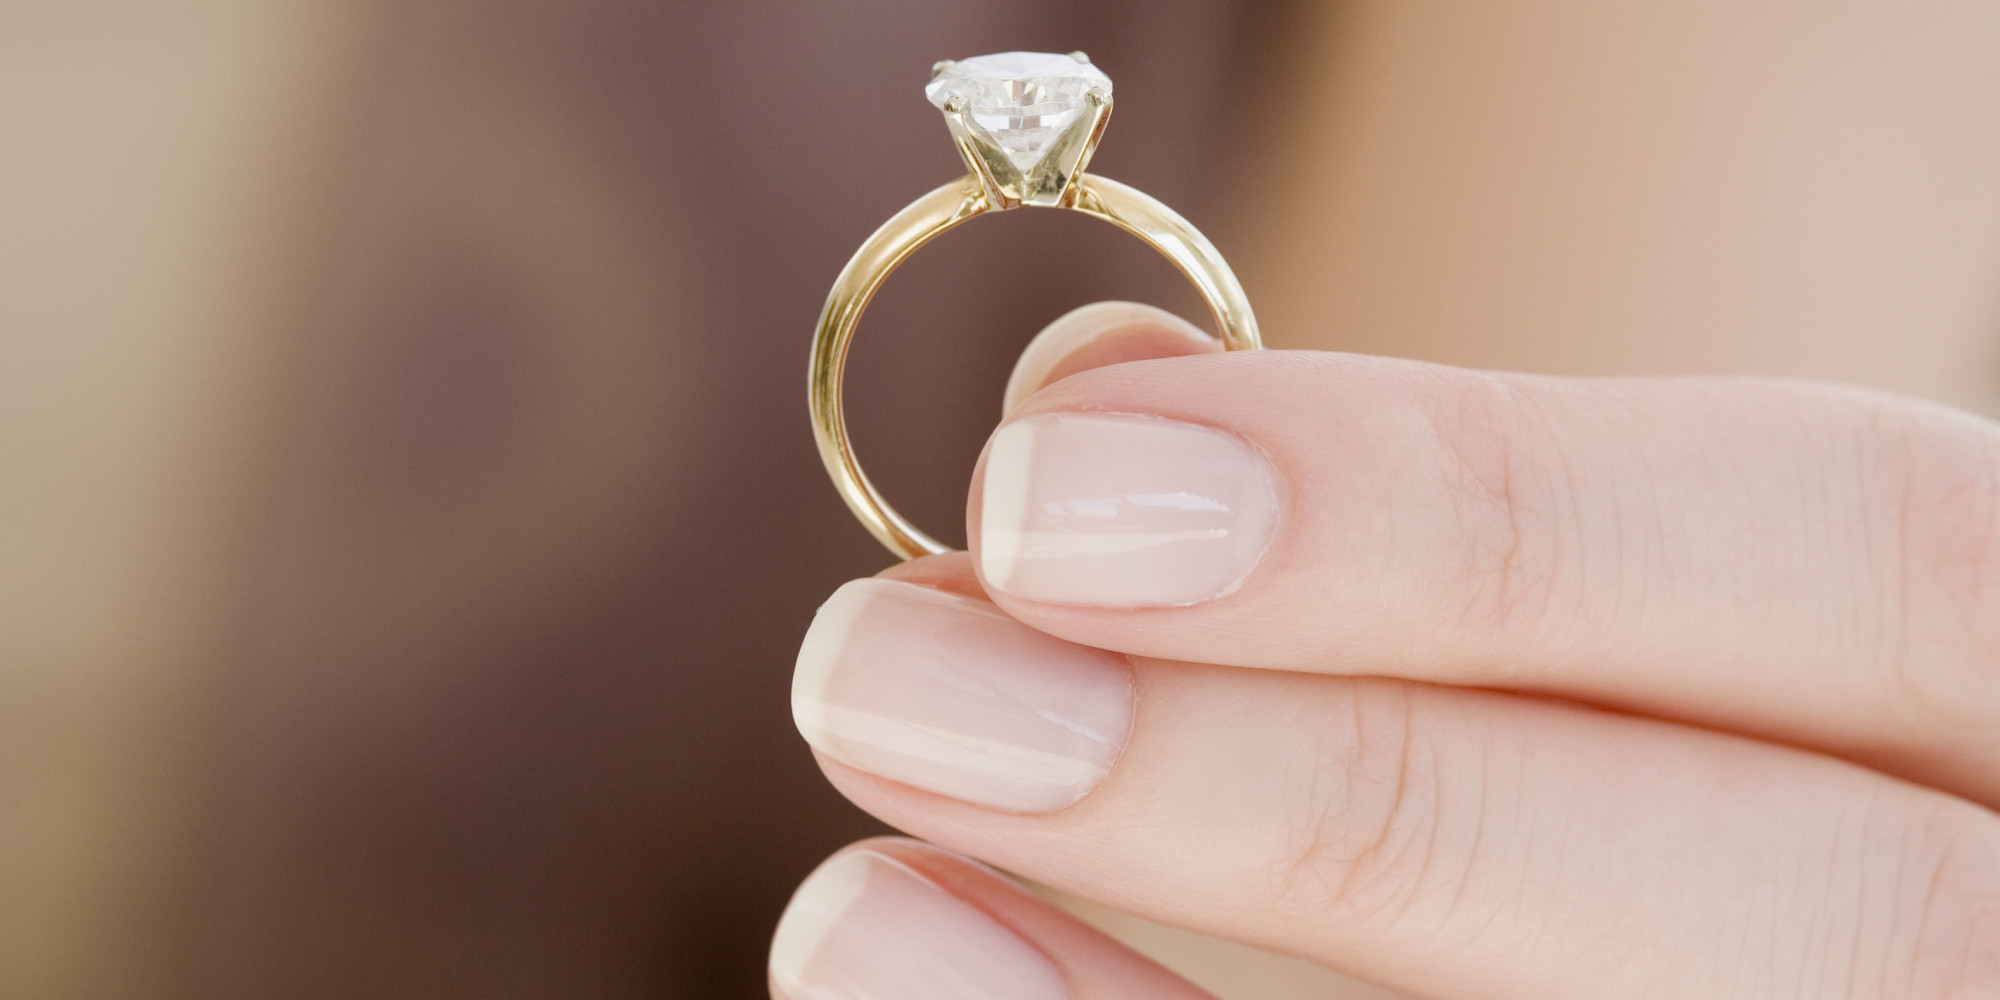 Woman Says Kay Jewelers Swapped Her Engagement Diamond For